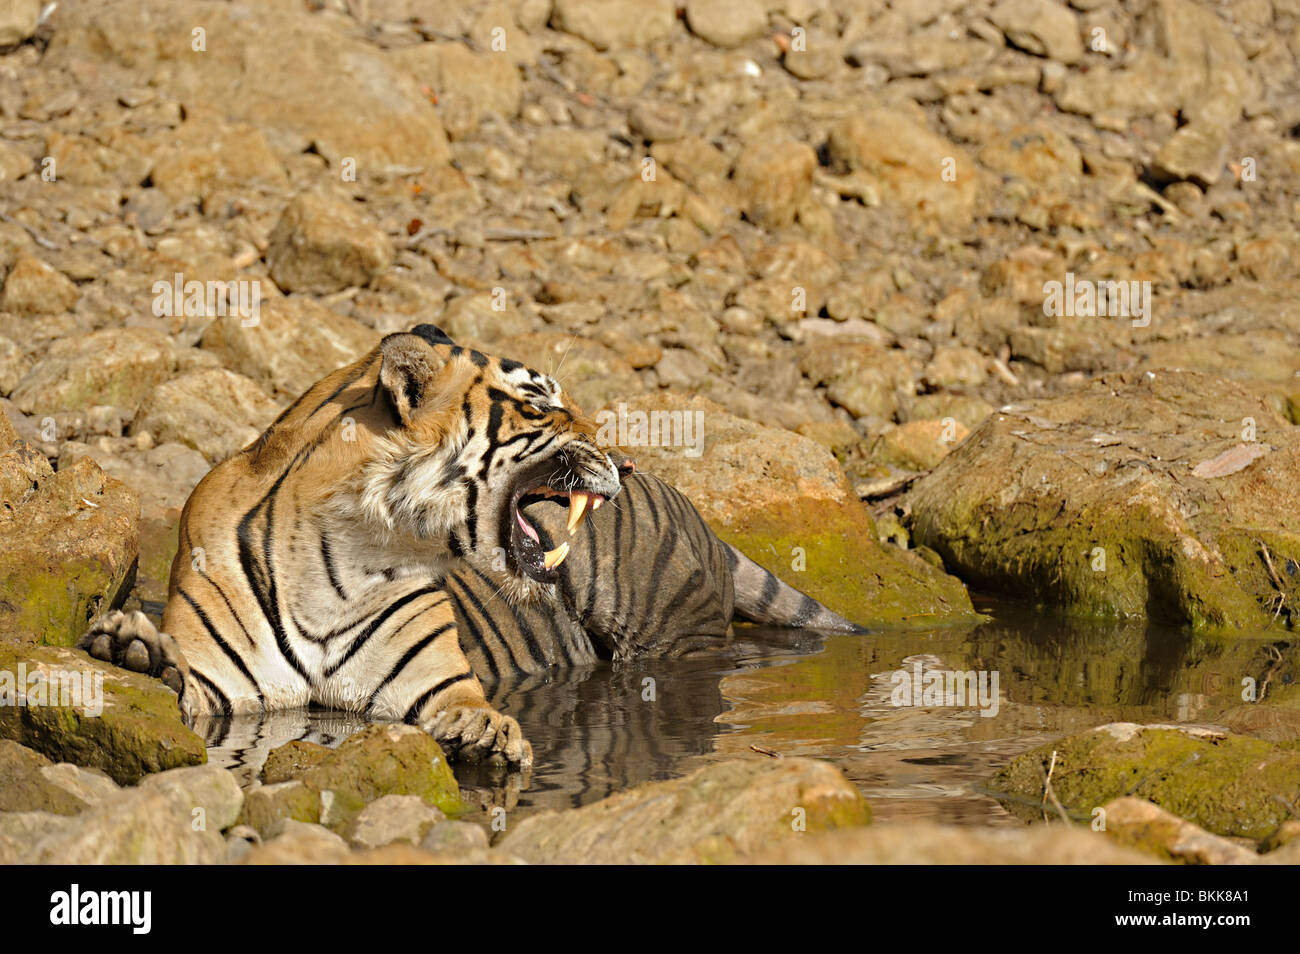 Tiger in a water hole in Ranthambhore - Stock Image